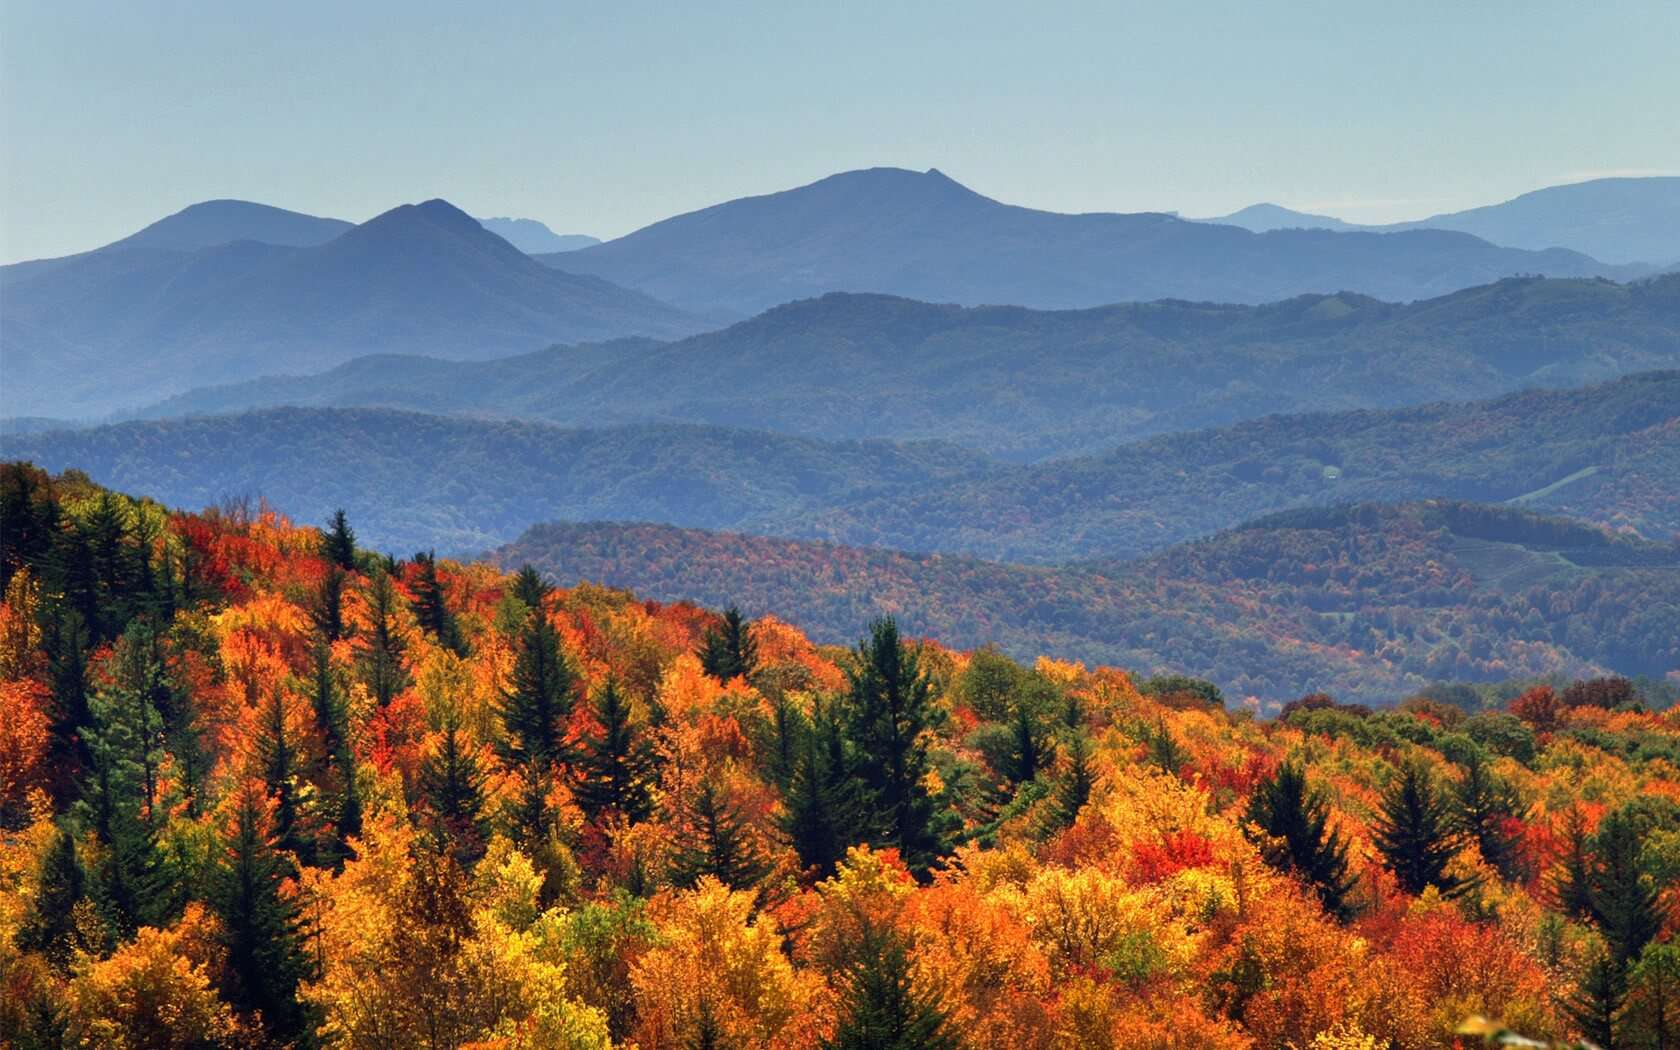 Breathtaking photo of the Smoky Mountains in the fall.